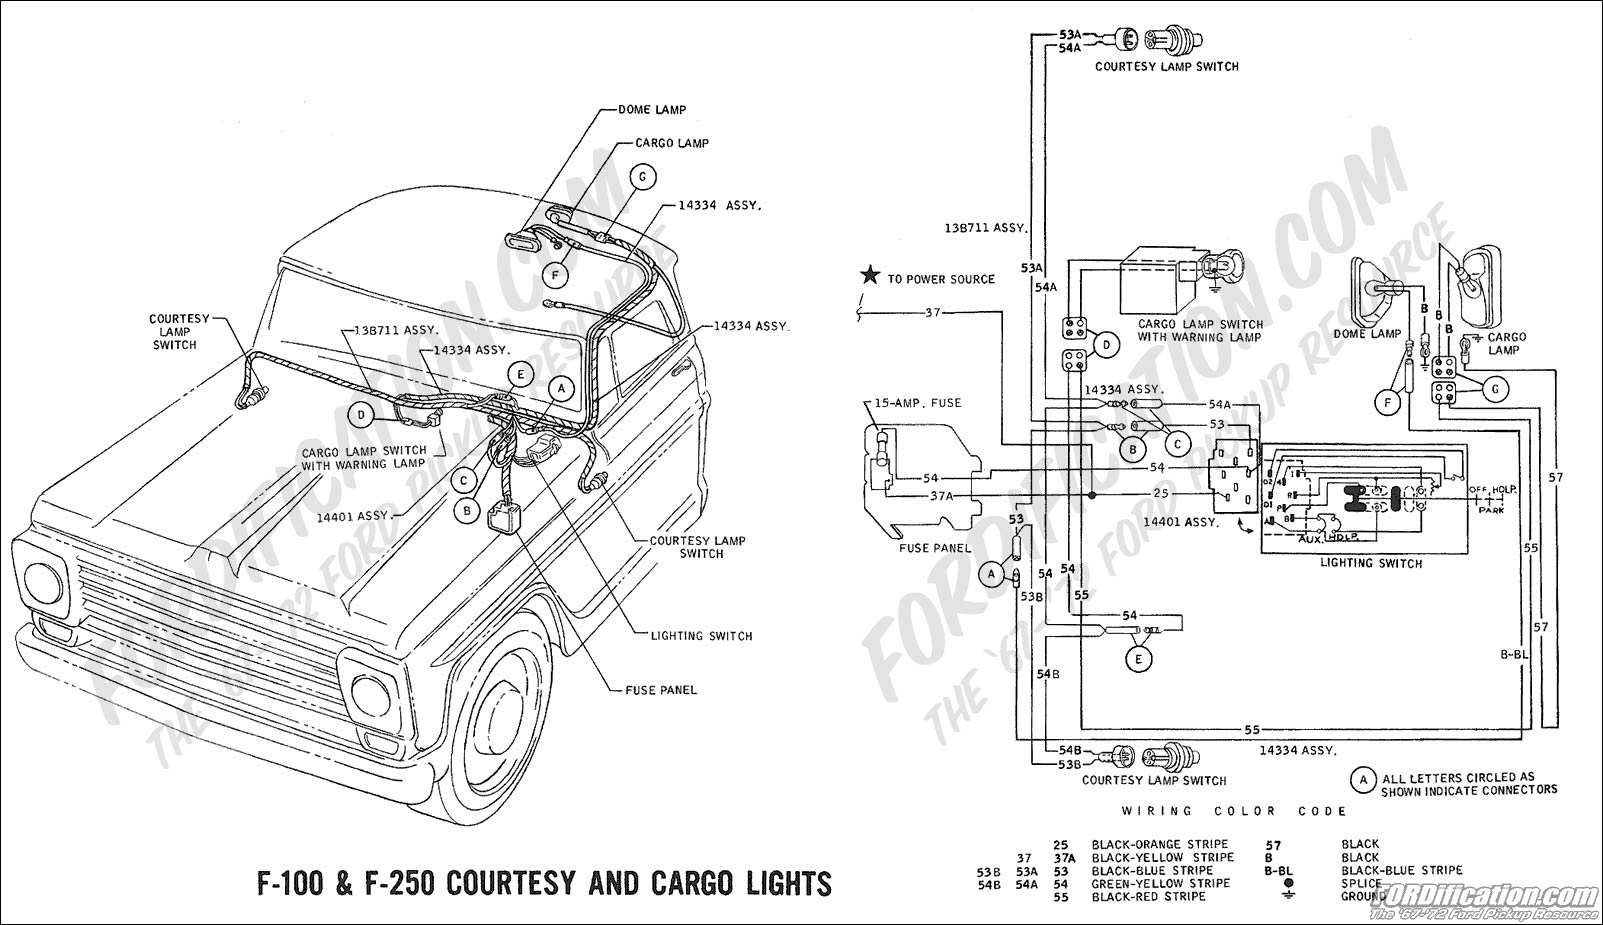 hot rod wiring diagram download facbooik com Simple Hot Rod Wiring Diagram ez wiring code car wiring diagram download tinyuniverse simple hot rod wiring diagram